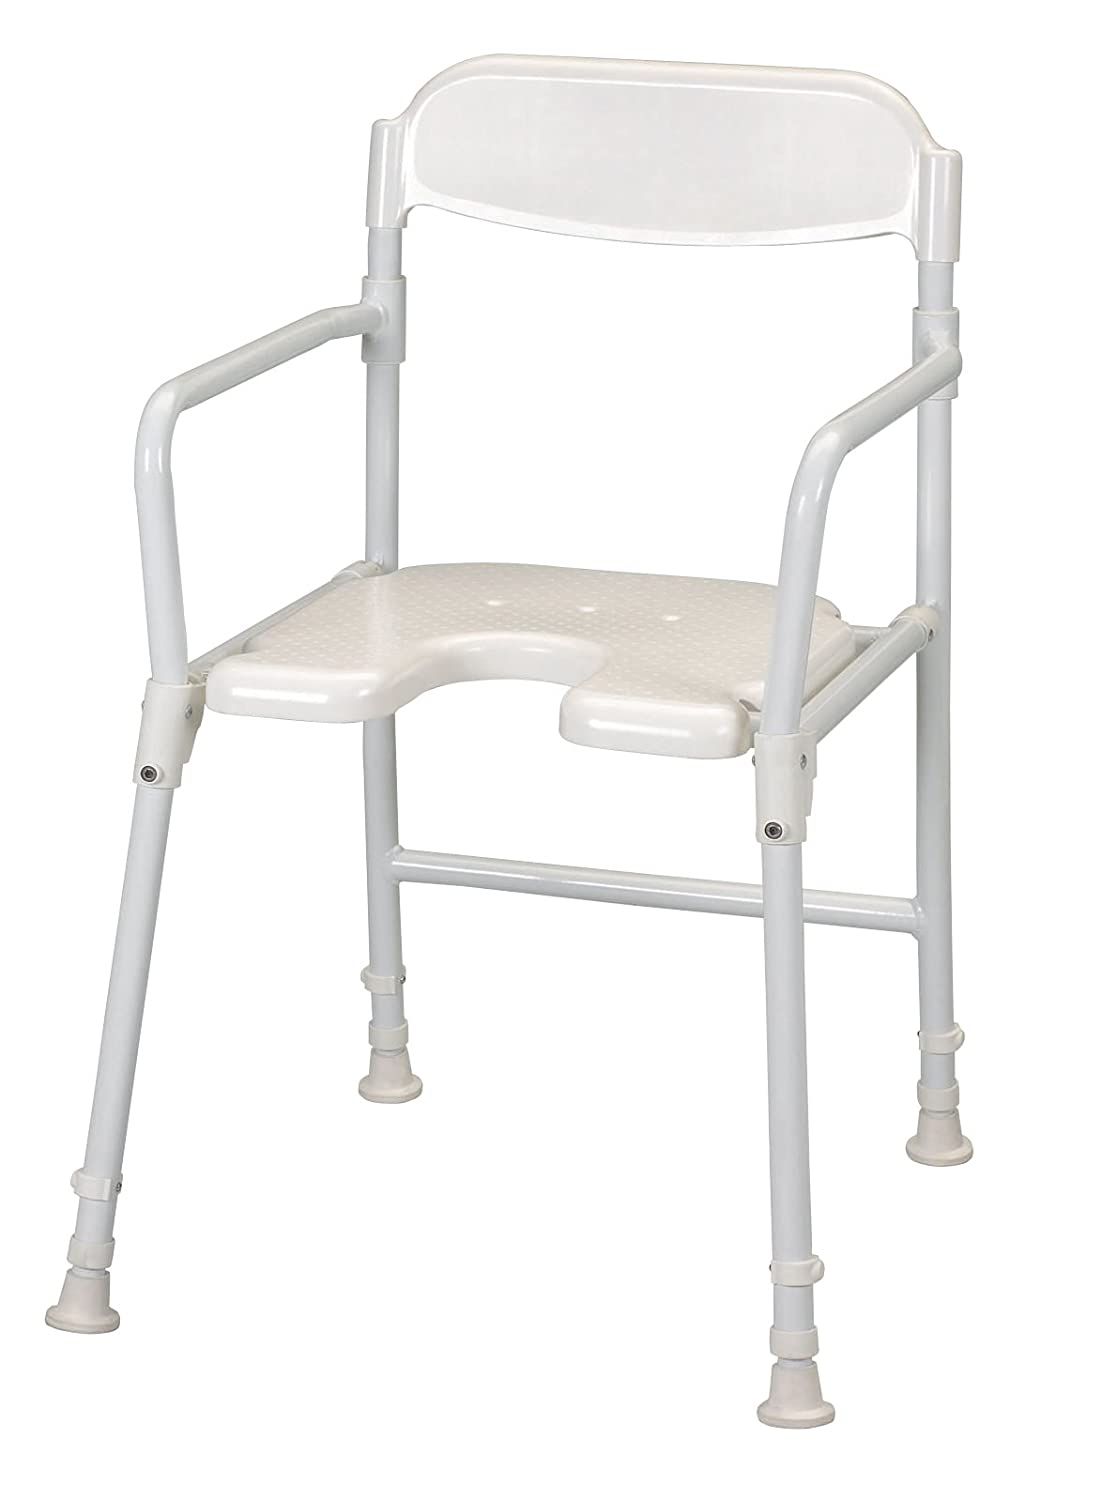 Patterson Medical - Silla plegable para ducha, color blanco ...